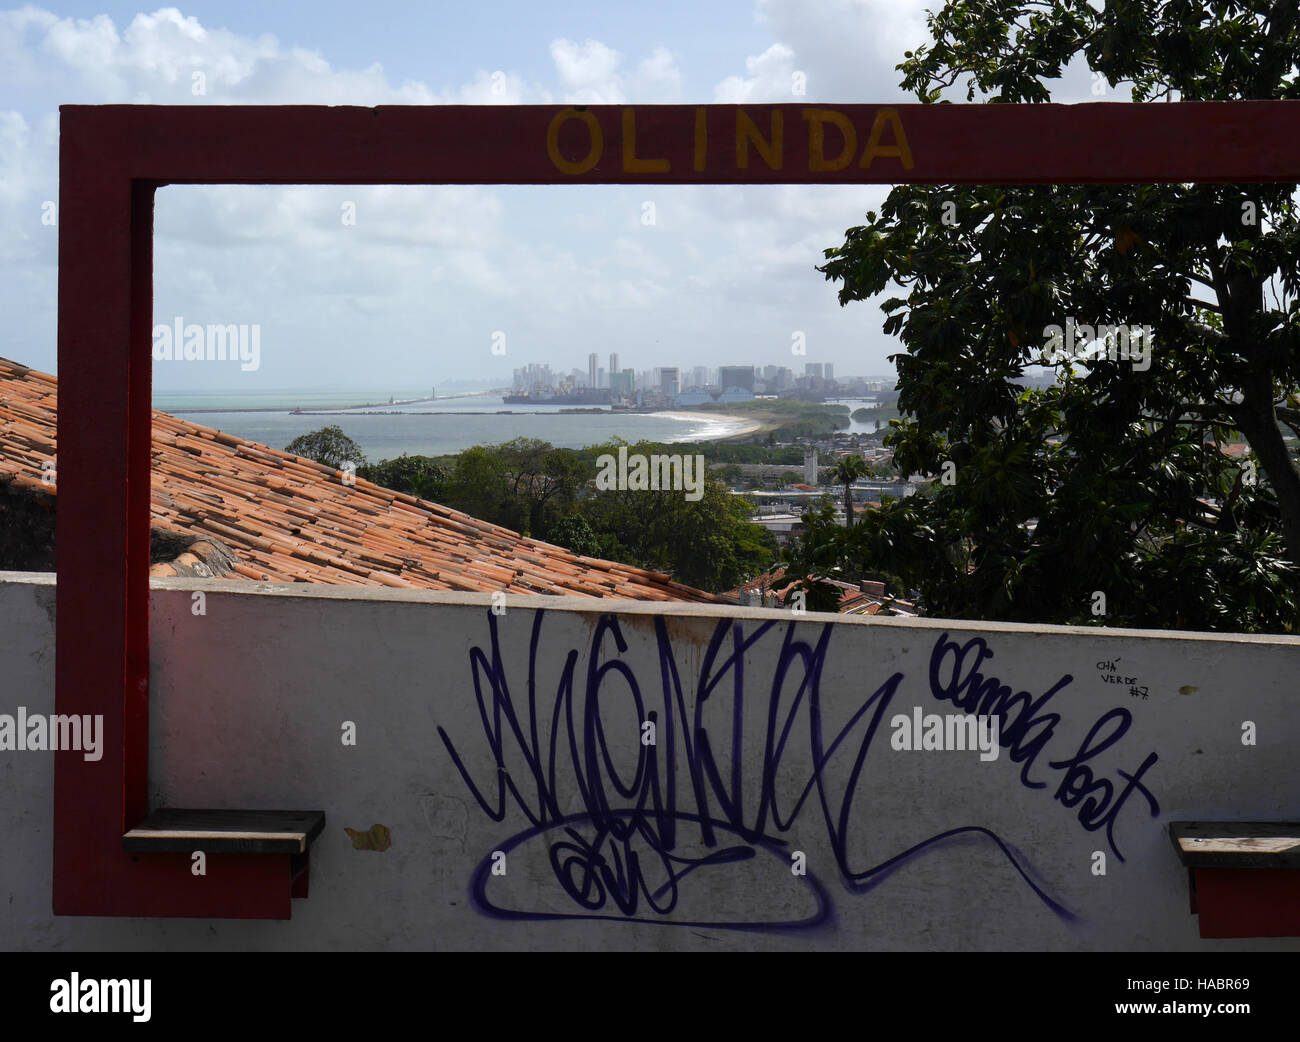 Tourist viewpoint from Olinda towards Recife brazil - Stock Image